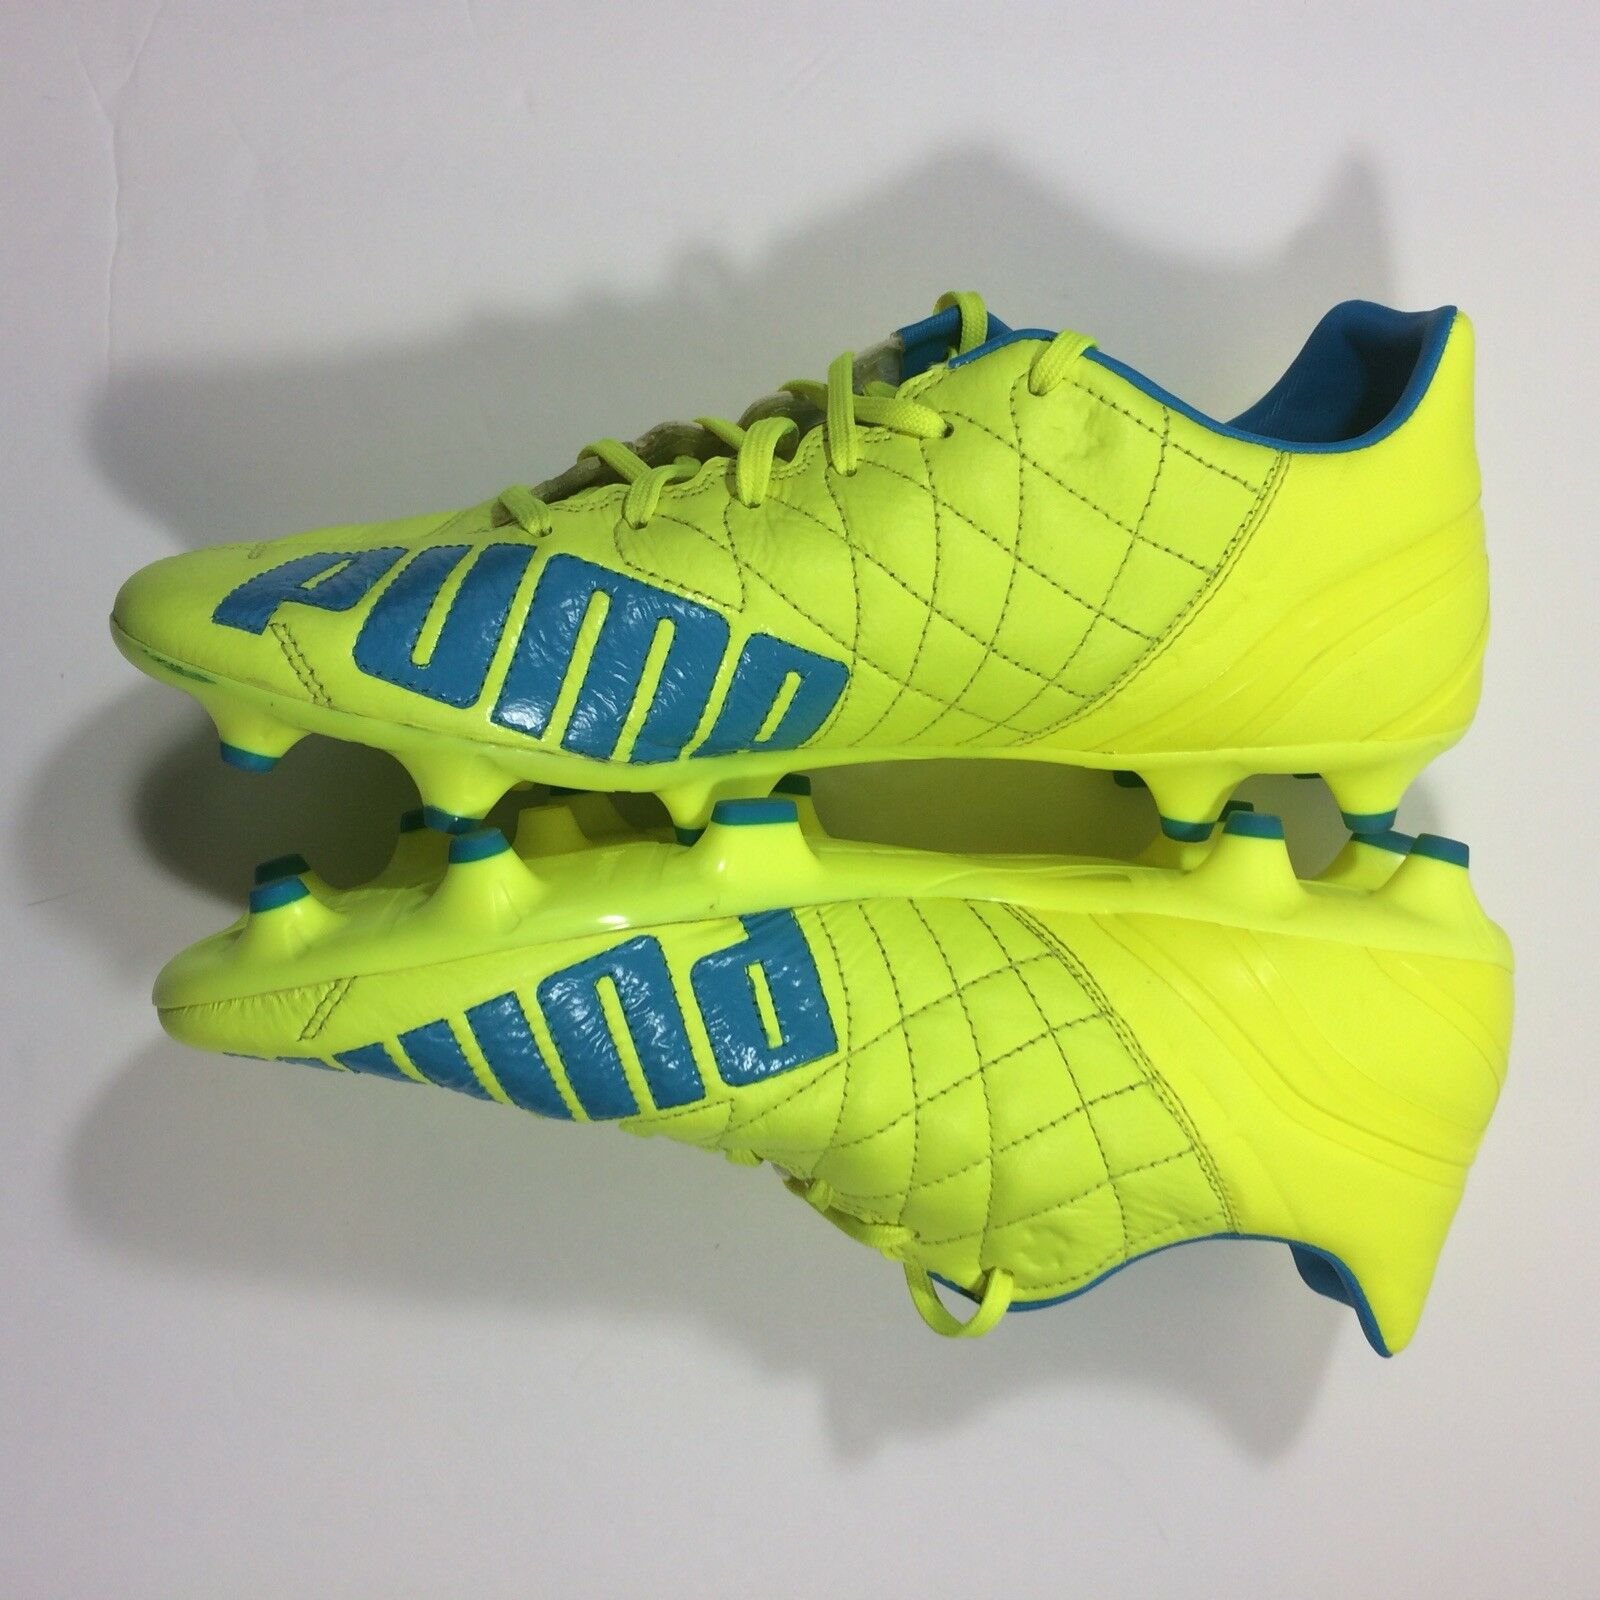 NWB Puma Evospeed 3.4 Lth Firm Ground Football/Soccer Cleats Cleats Cleats  Herren 10.5 Gelb 47c1d7